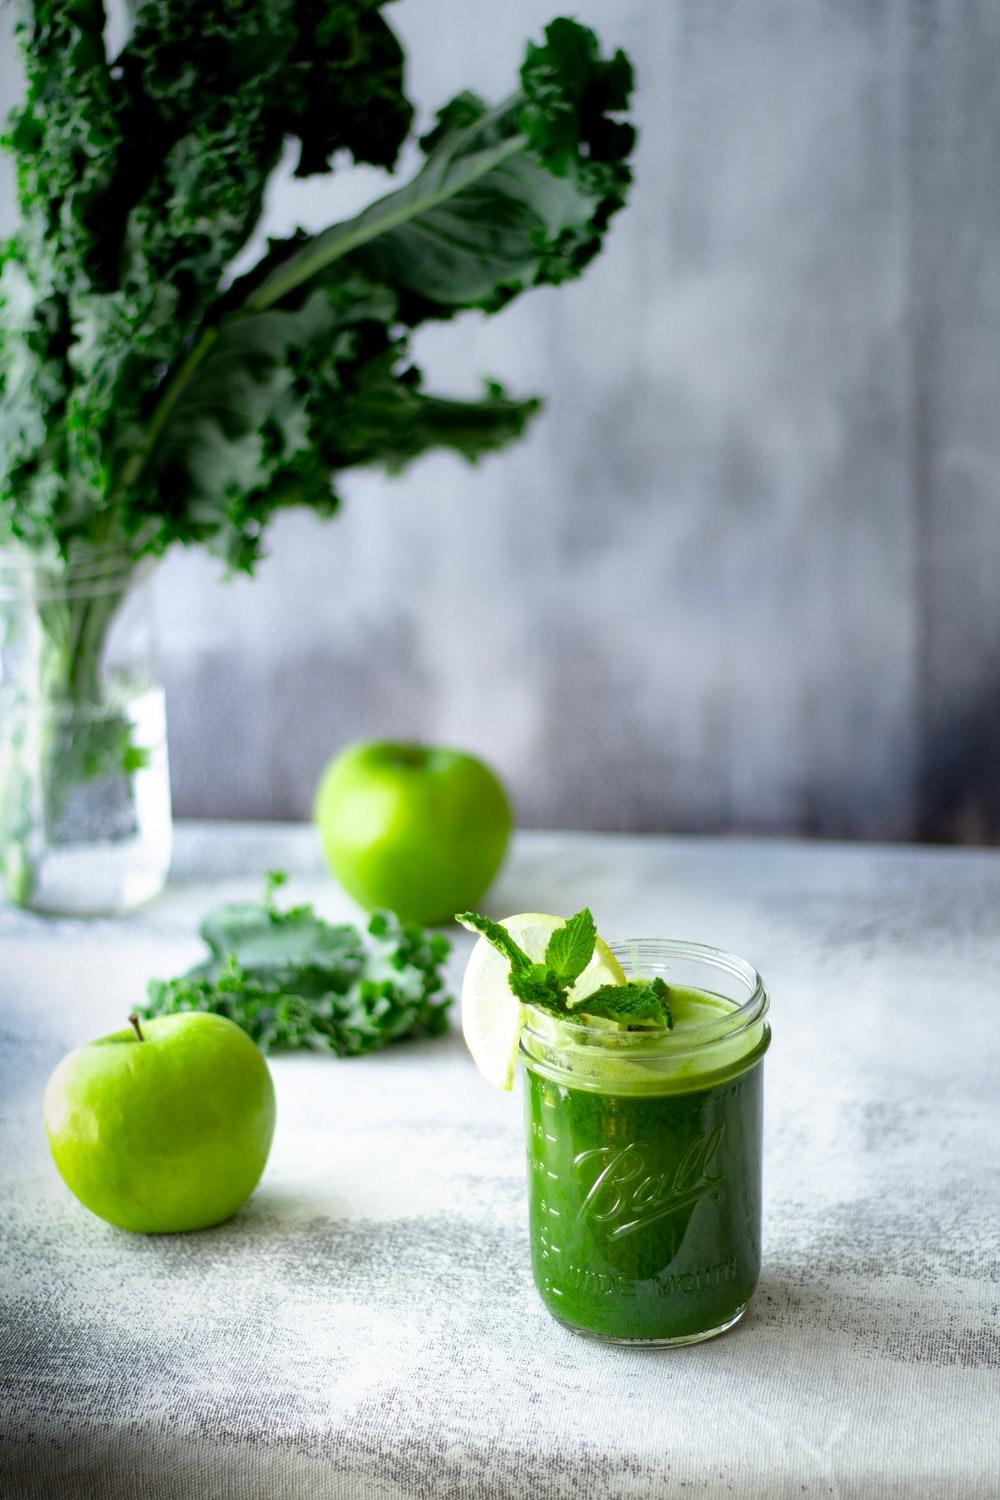 green apple fruit in clear glass cup